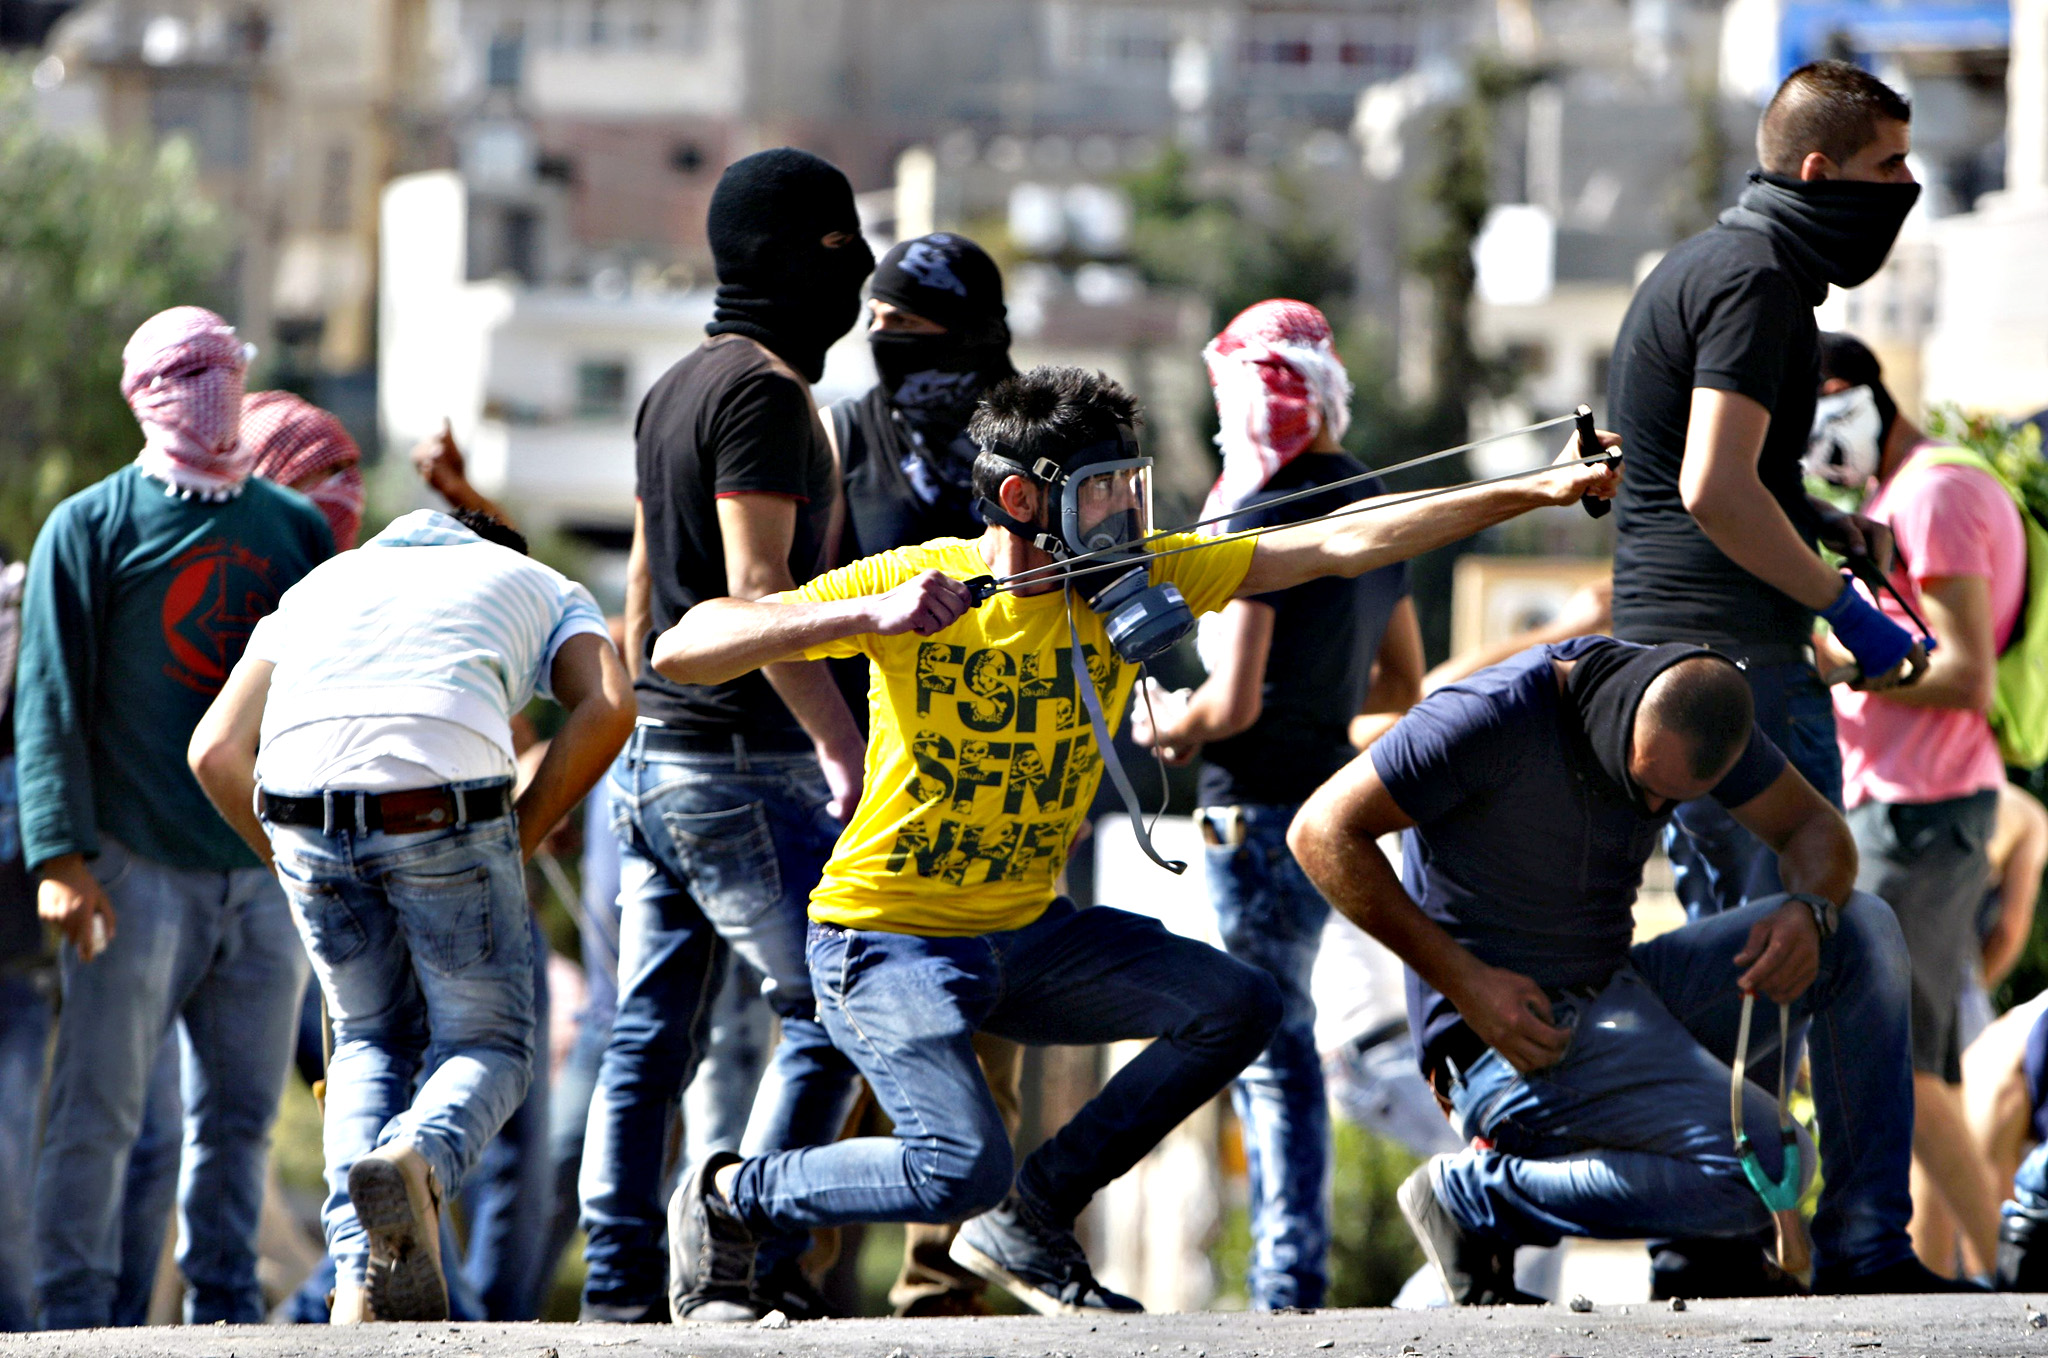 A Palestinian uses a slingshot to throw stones at Israeli troops during clashes in the West Bank city of Bethlehem on Wednesday. Seven Israelis and 30 Palestinians, including children and assailants, have been killed in two weeks of bloodshed in Israel, Jerusalem and the occupied West Bank. The violence has been partly triggered by Palestinians' anger over what they see as increased Jewish encroachment on Jerusalem's Al-Aqsa mosque compound, also revered by Jews as the site of two destroyed Jewish temples.